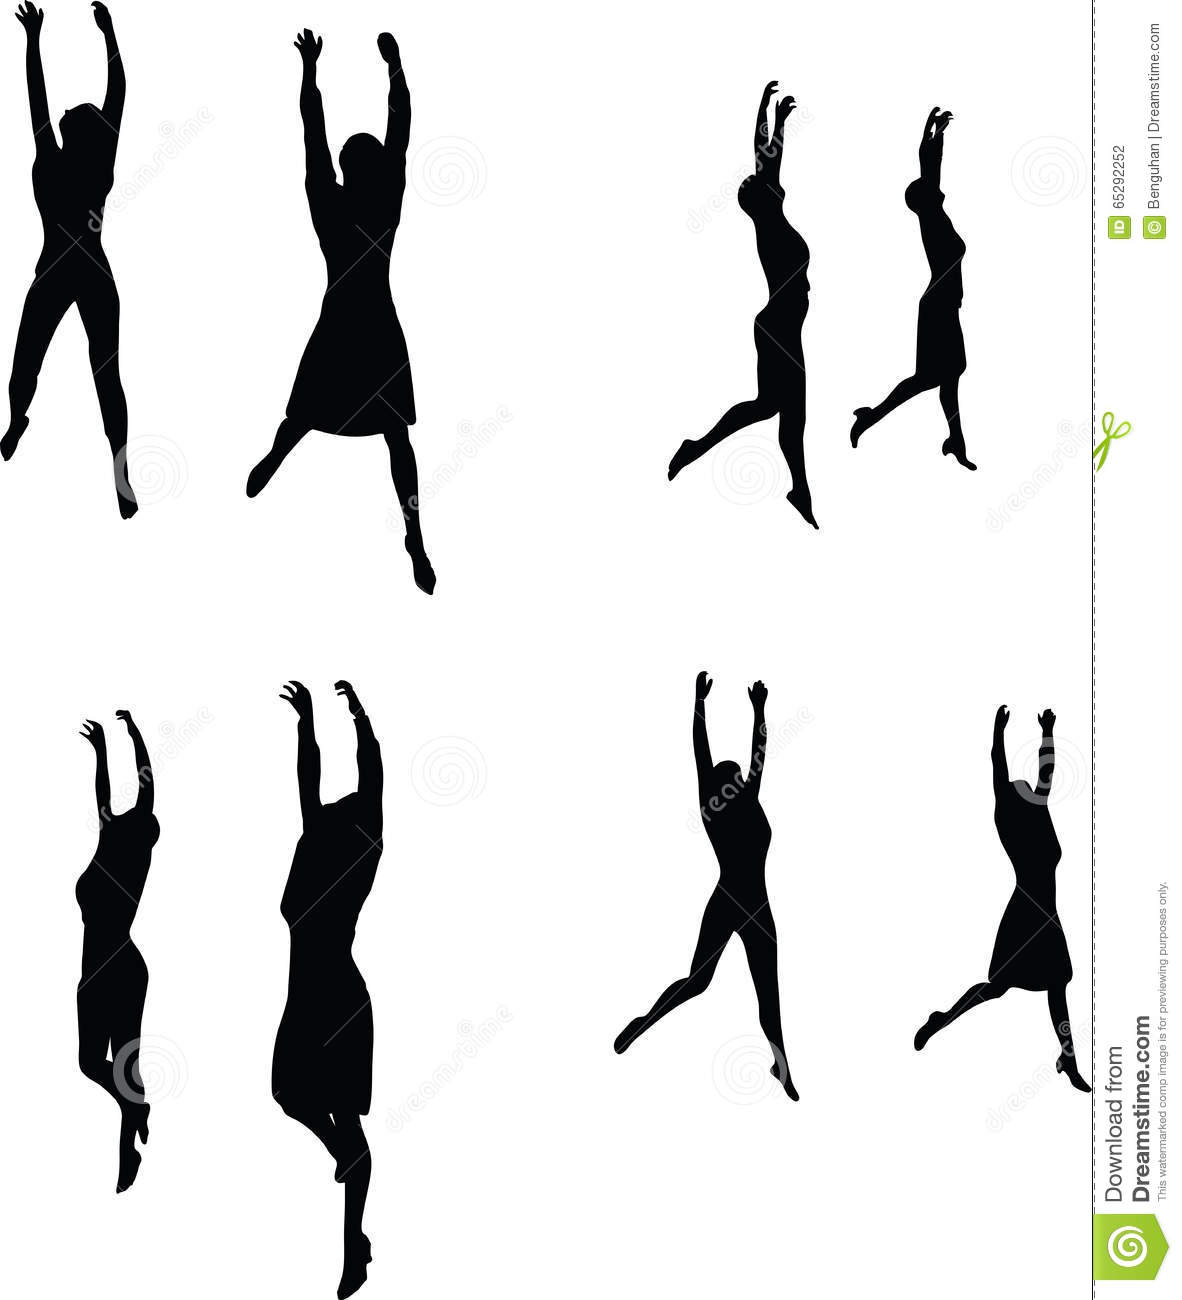 eps 10 vector illustration in silhouette of business woman hanging